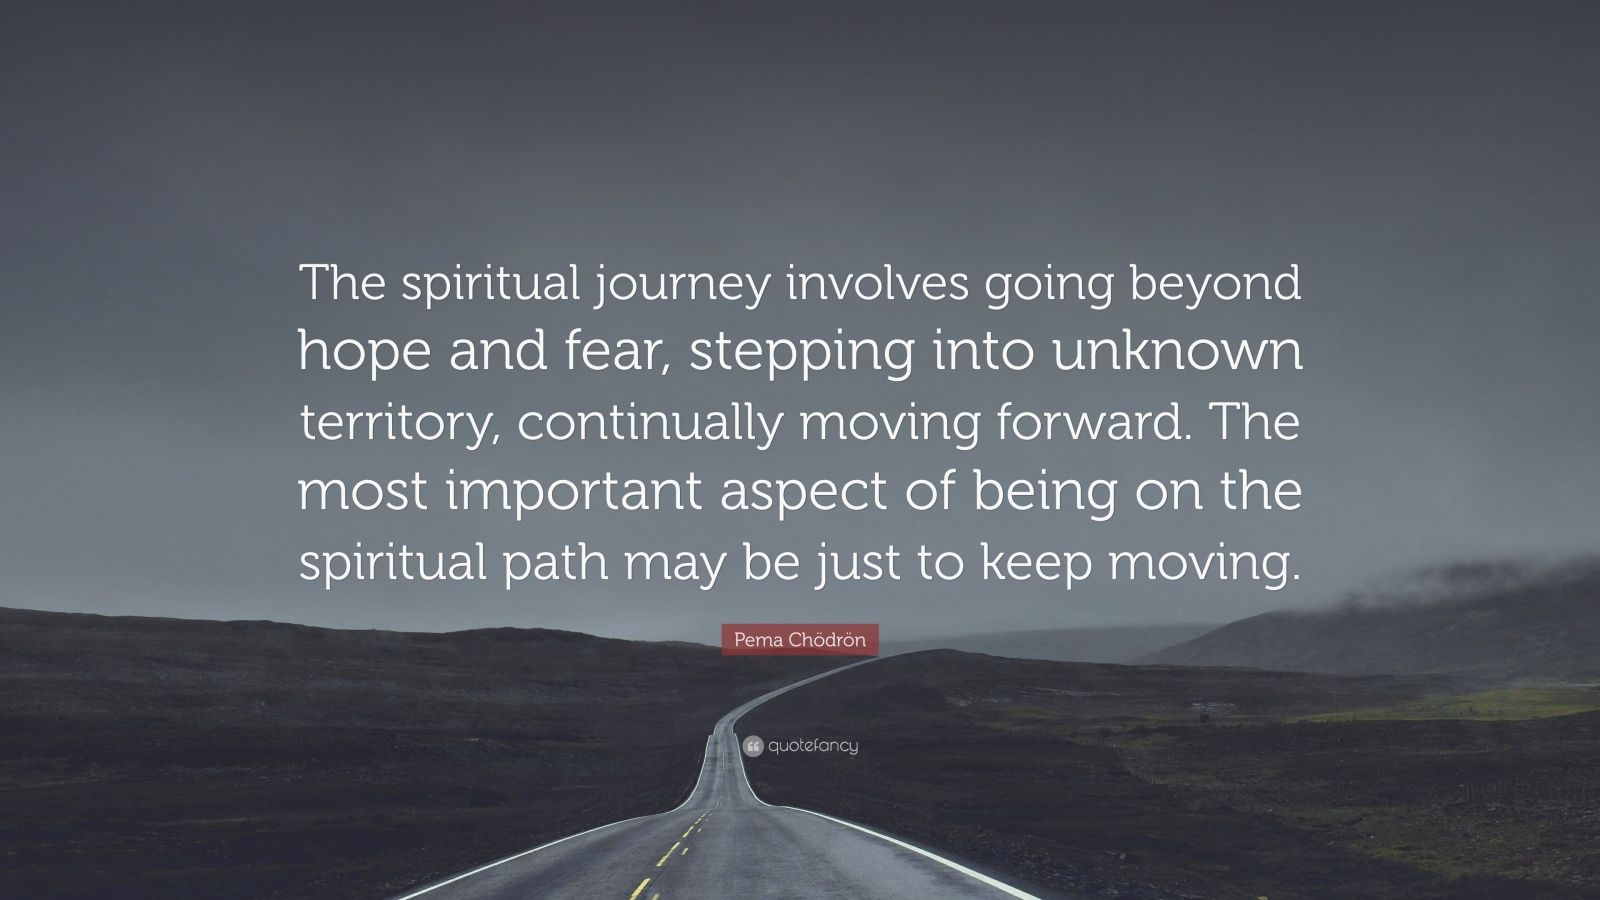 """Pema Chödrön Quote: """"The spiritual journey involves going beyond hope and fear, stepping into unknown territory, continually moving forward. The most important aspect of being on the spiritual path may be just to keep moving."""""""